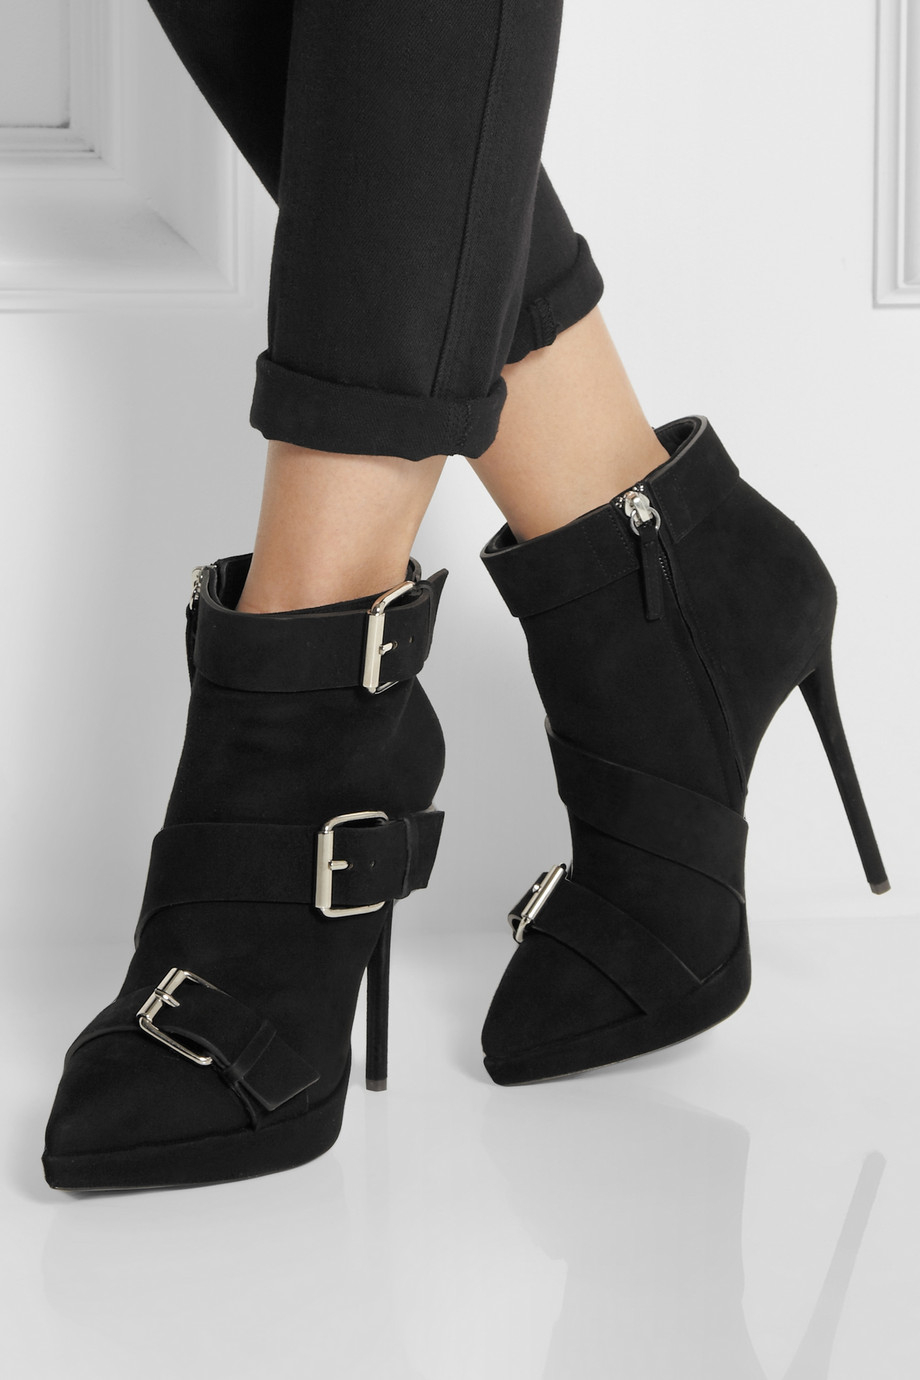 lyst giuseppe zanotti buckled suede ankle boots in black rh lyst com